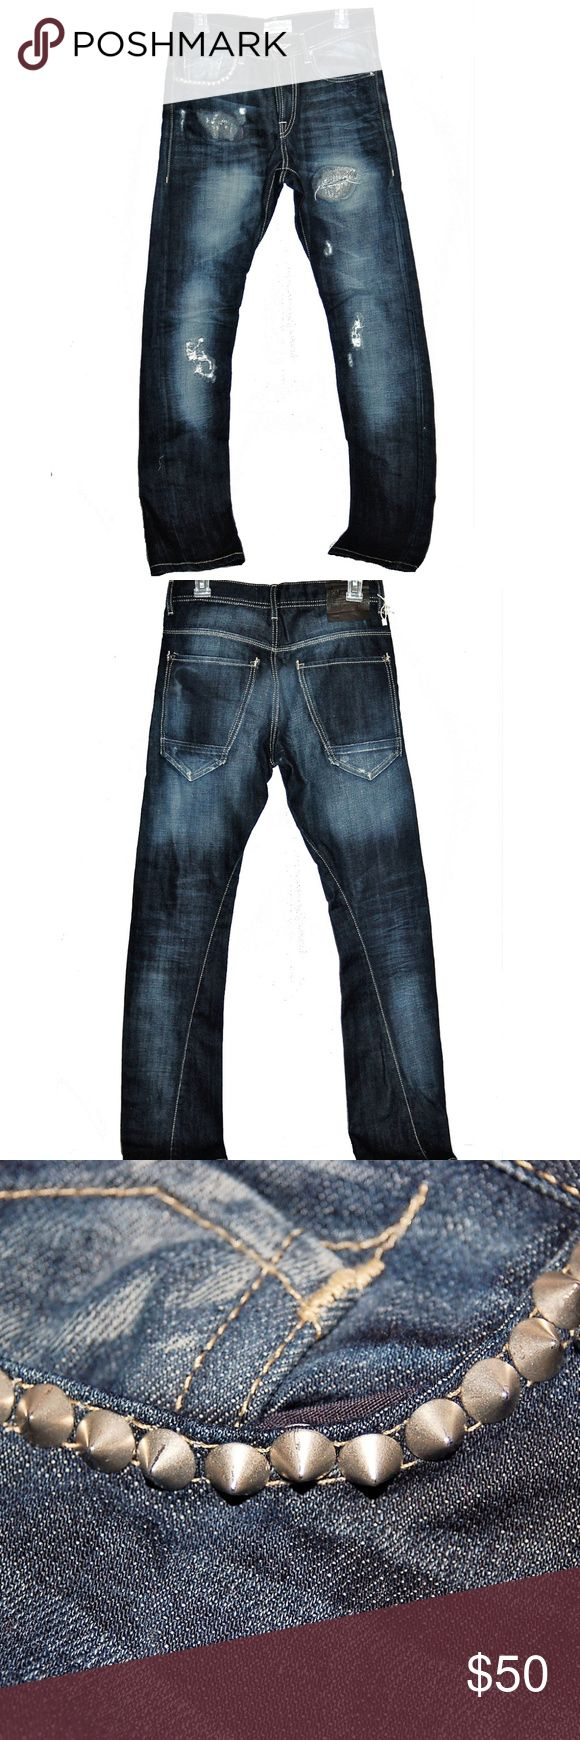 """ZARA MAN COLLECTION JEANS Distressed Studded Jeans Very nice dark wash skinny jeans in unworn condition! Cool pocket stud detailing. EUR38 /US30.   Measure approx: 15"""" across waist, 17 1/4"""" across hip area, 9 1/2"""" rise, 42 1/4"""" full length waist to hem Zara Man Jeans Skinny"""